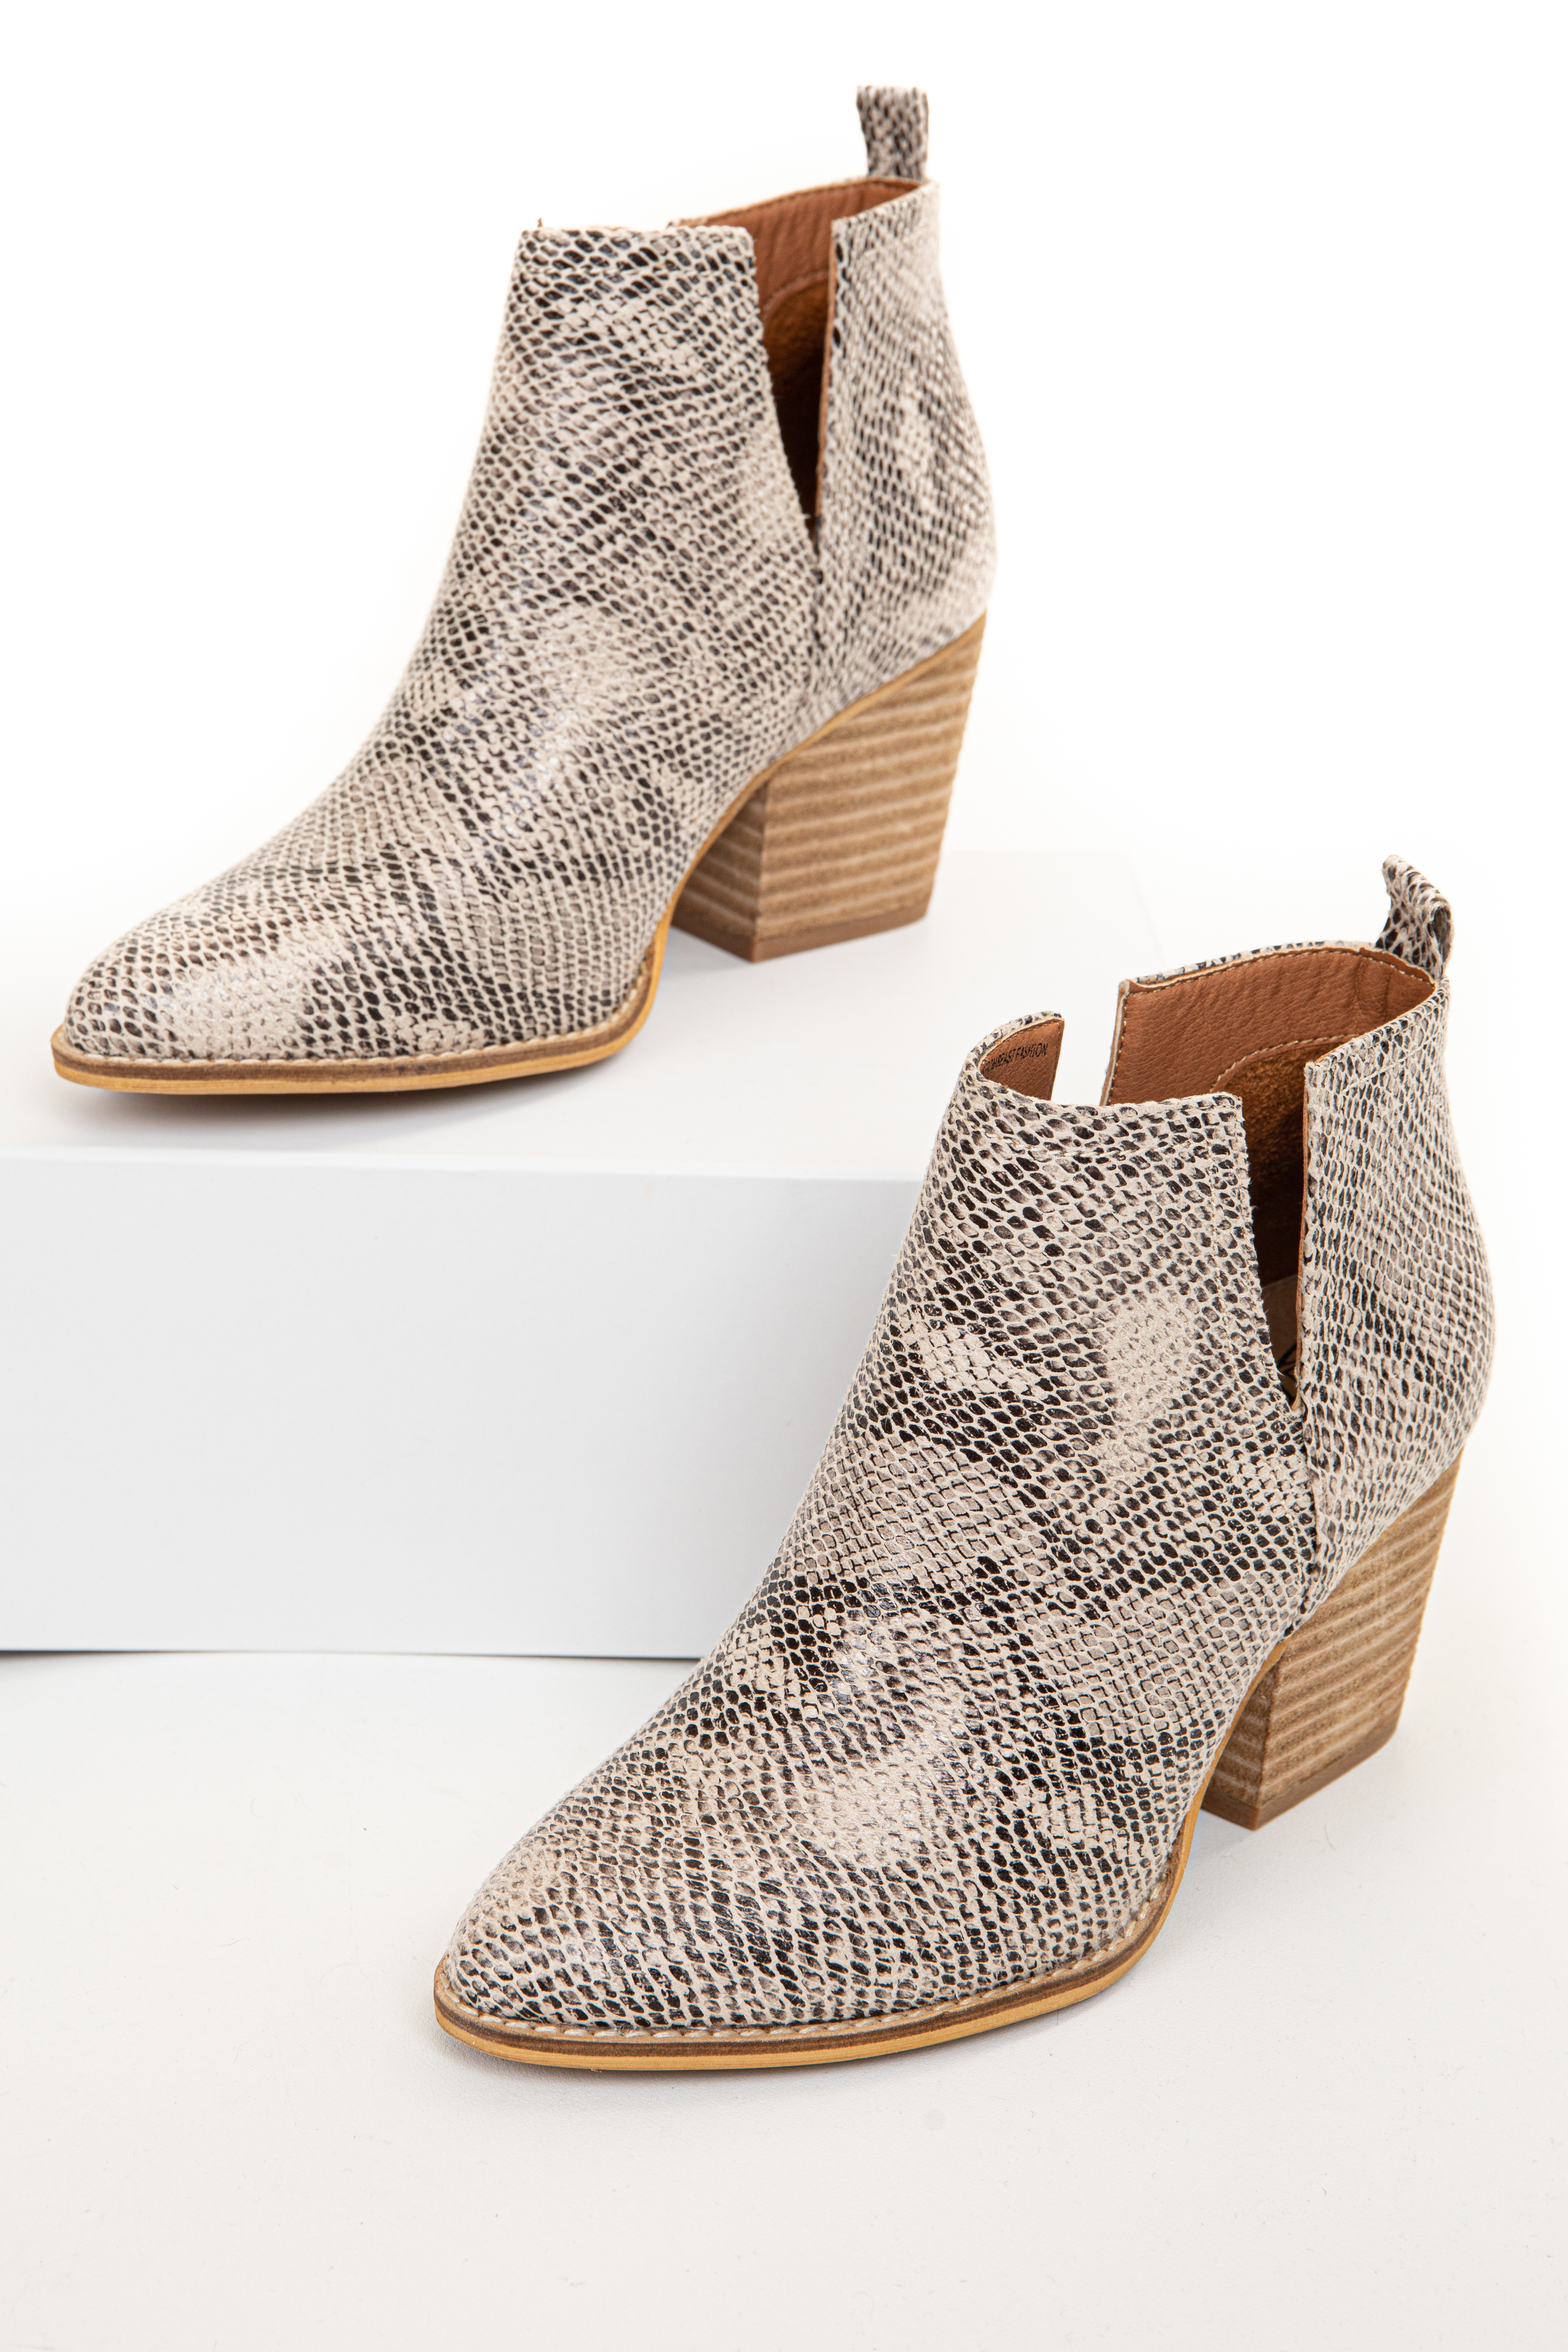 Ivory and Black Snake Print Bootie with Tan Stacked Heel